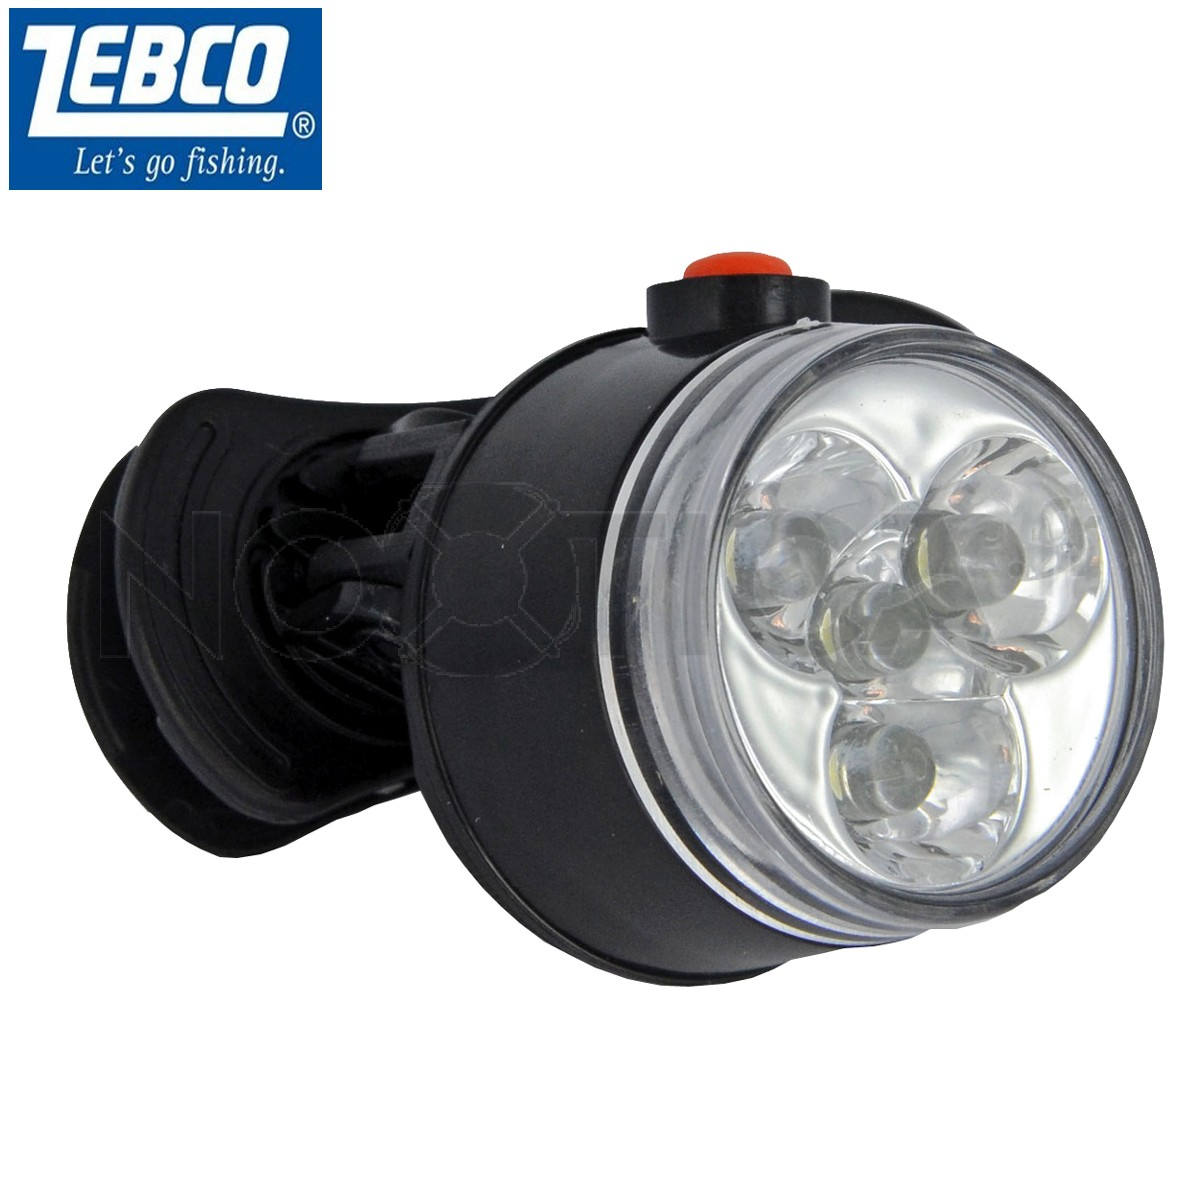 Lampe Clip Lampe Zebco Led Clip On Light